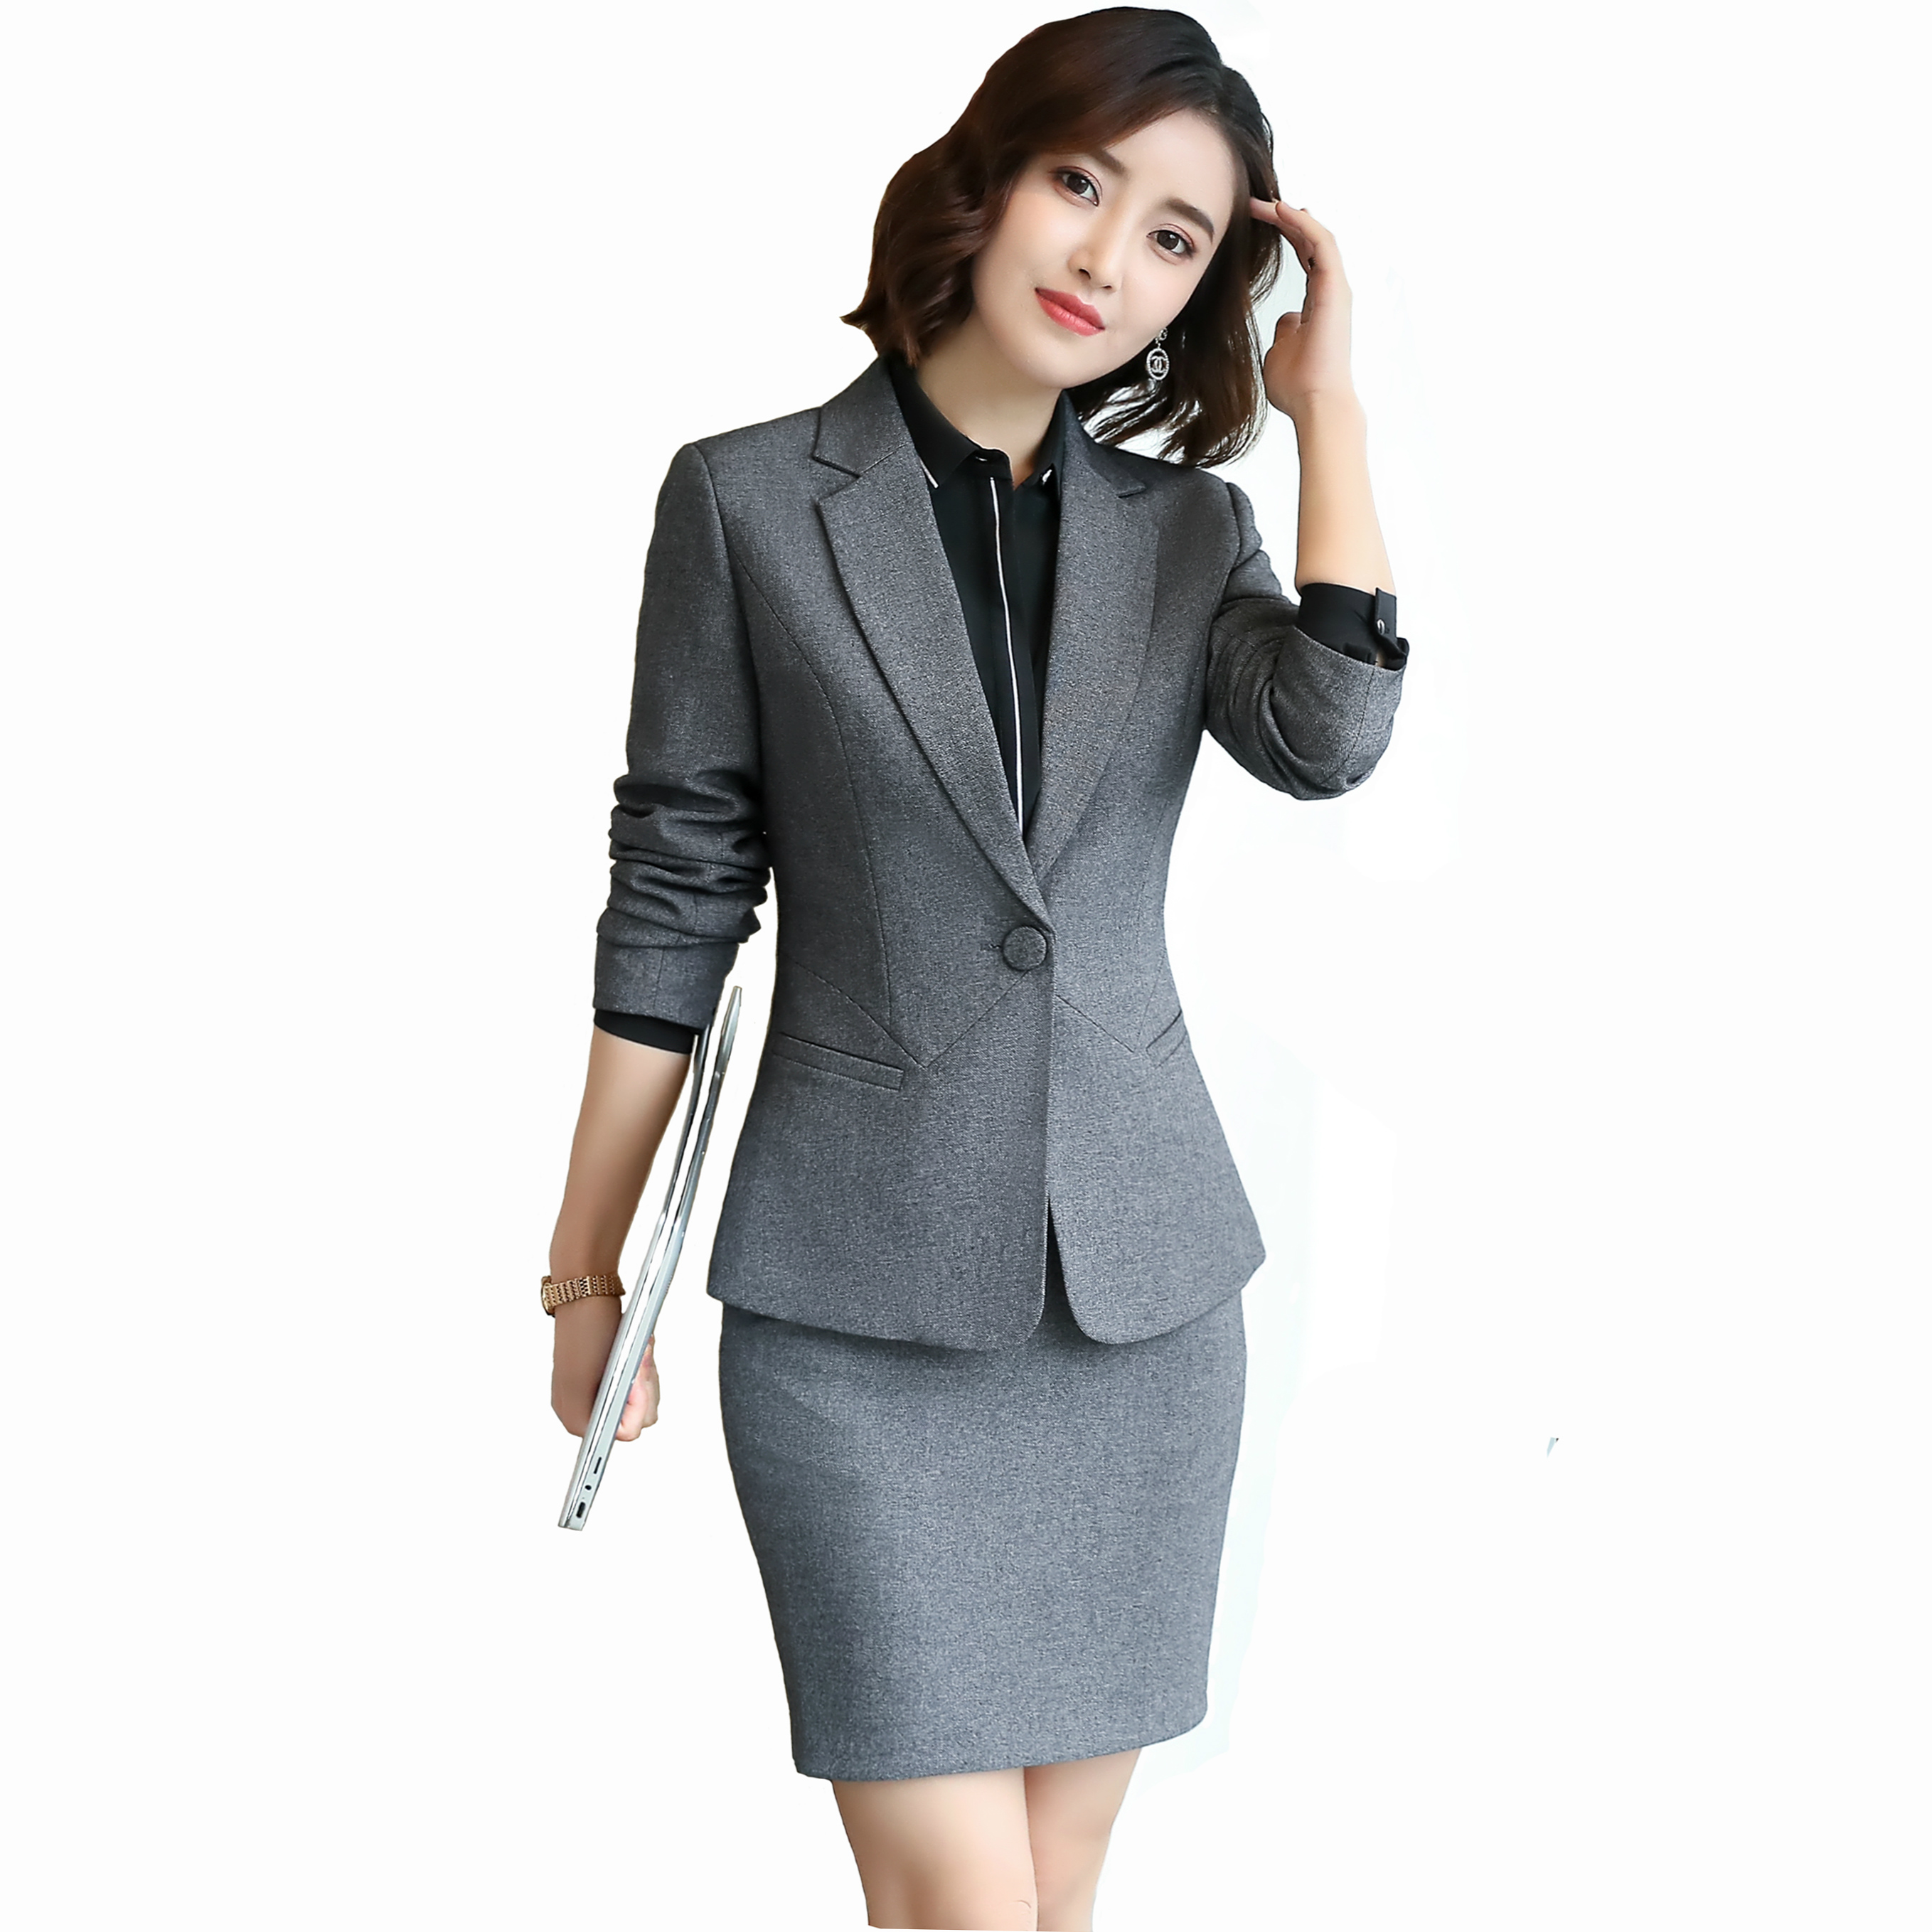 Women Spring Autumn Skirt Suit Formal Wear Blazer Office Lady Business Wear Casual Work Overalls Suits Female formal wear